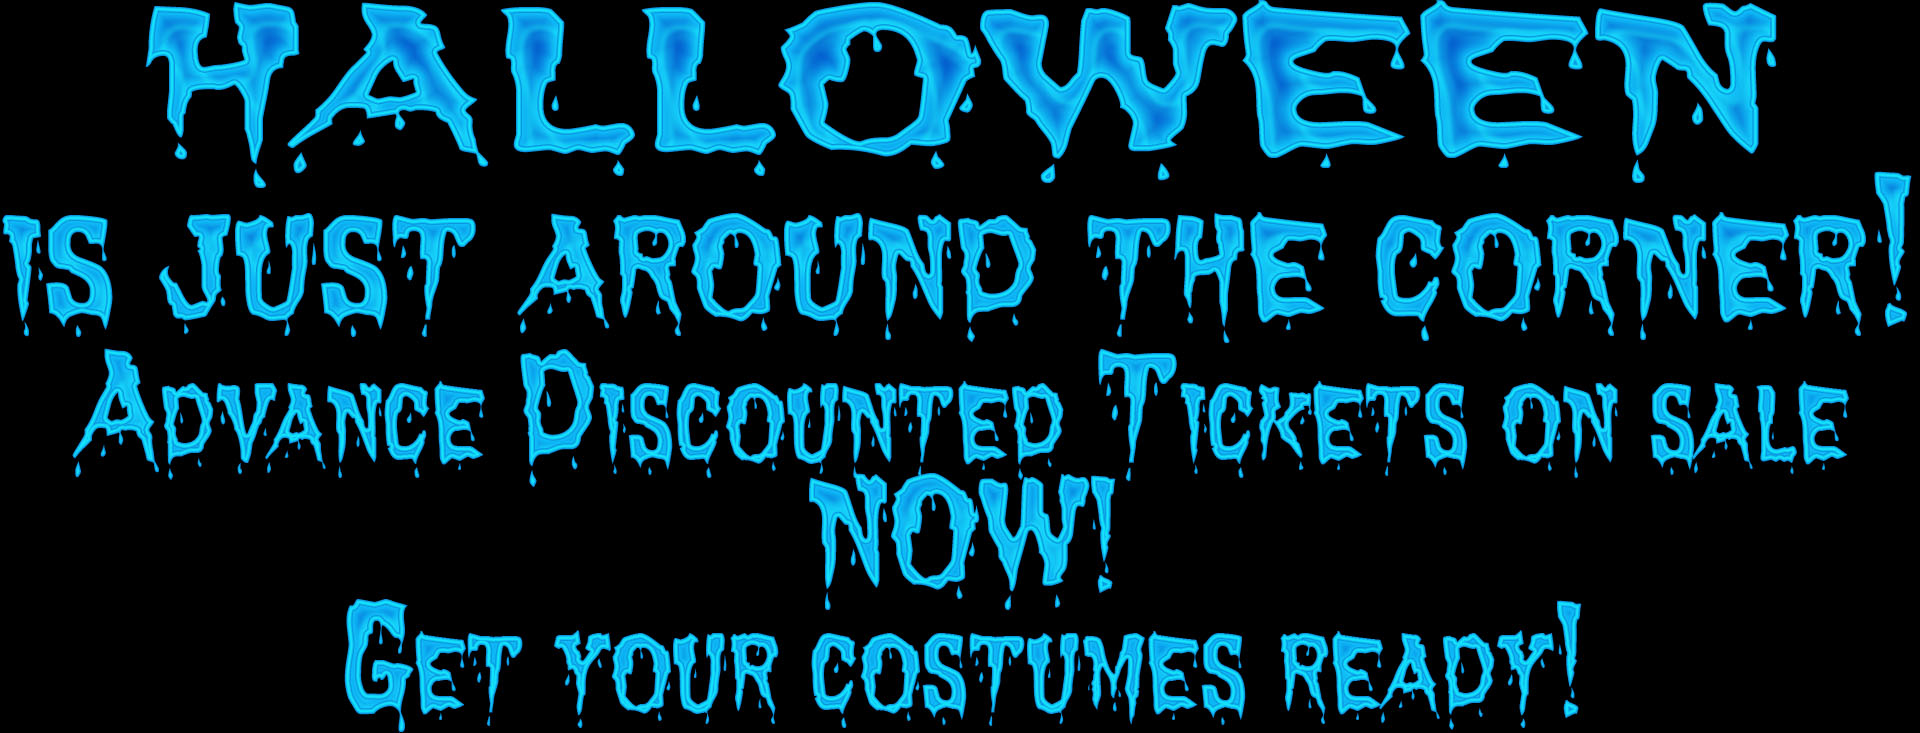 Halloween is just around the corner! Advance discounted tickets on sale NOW!